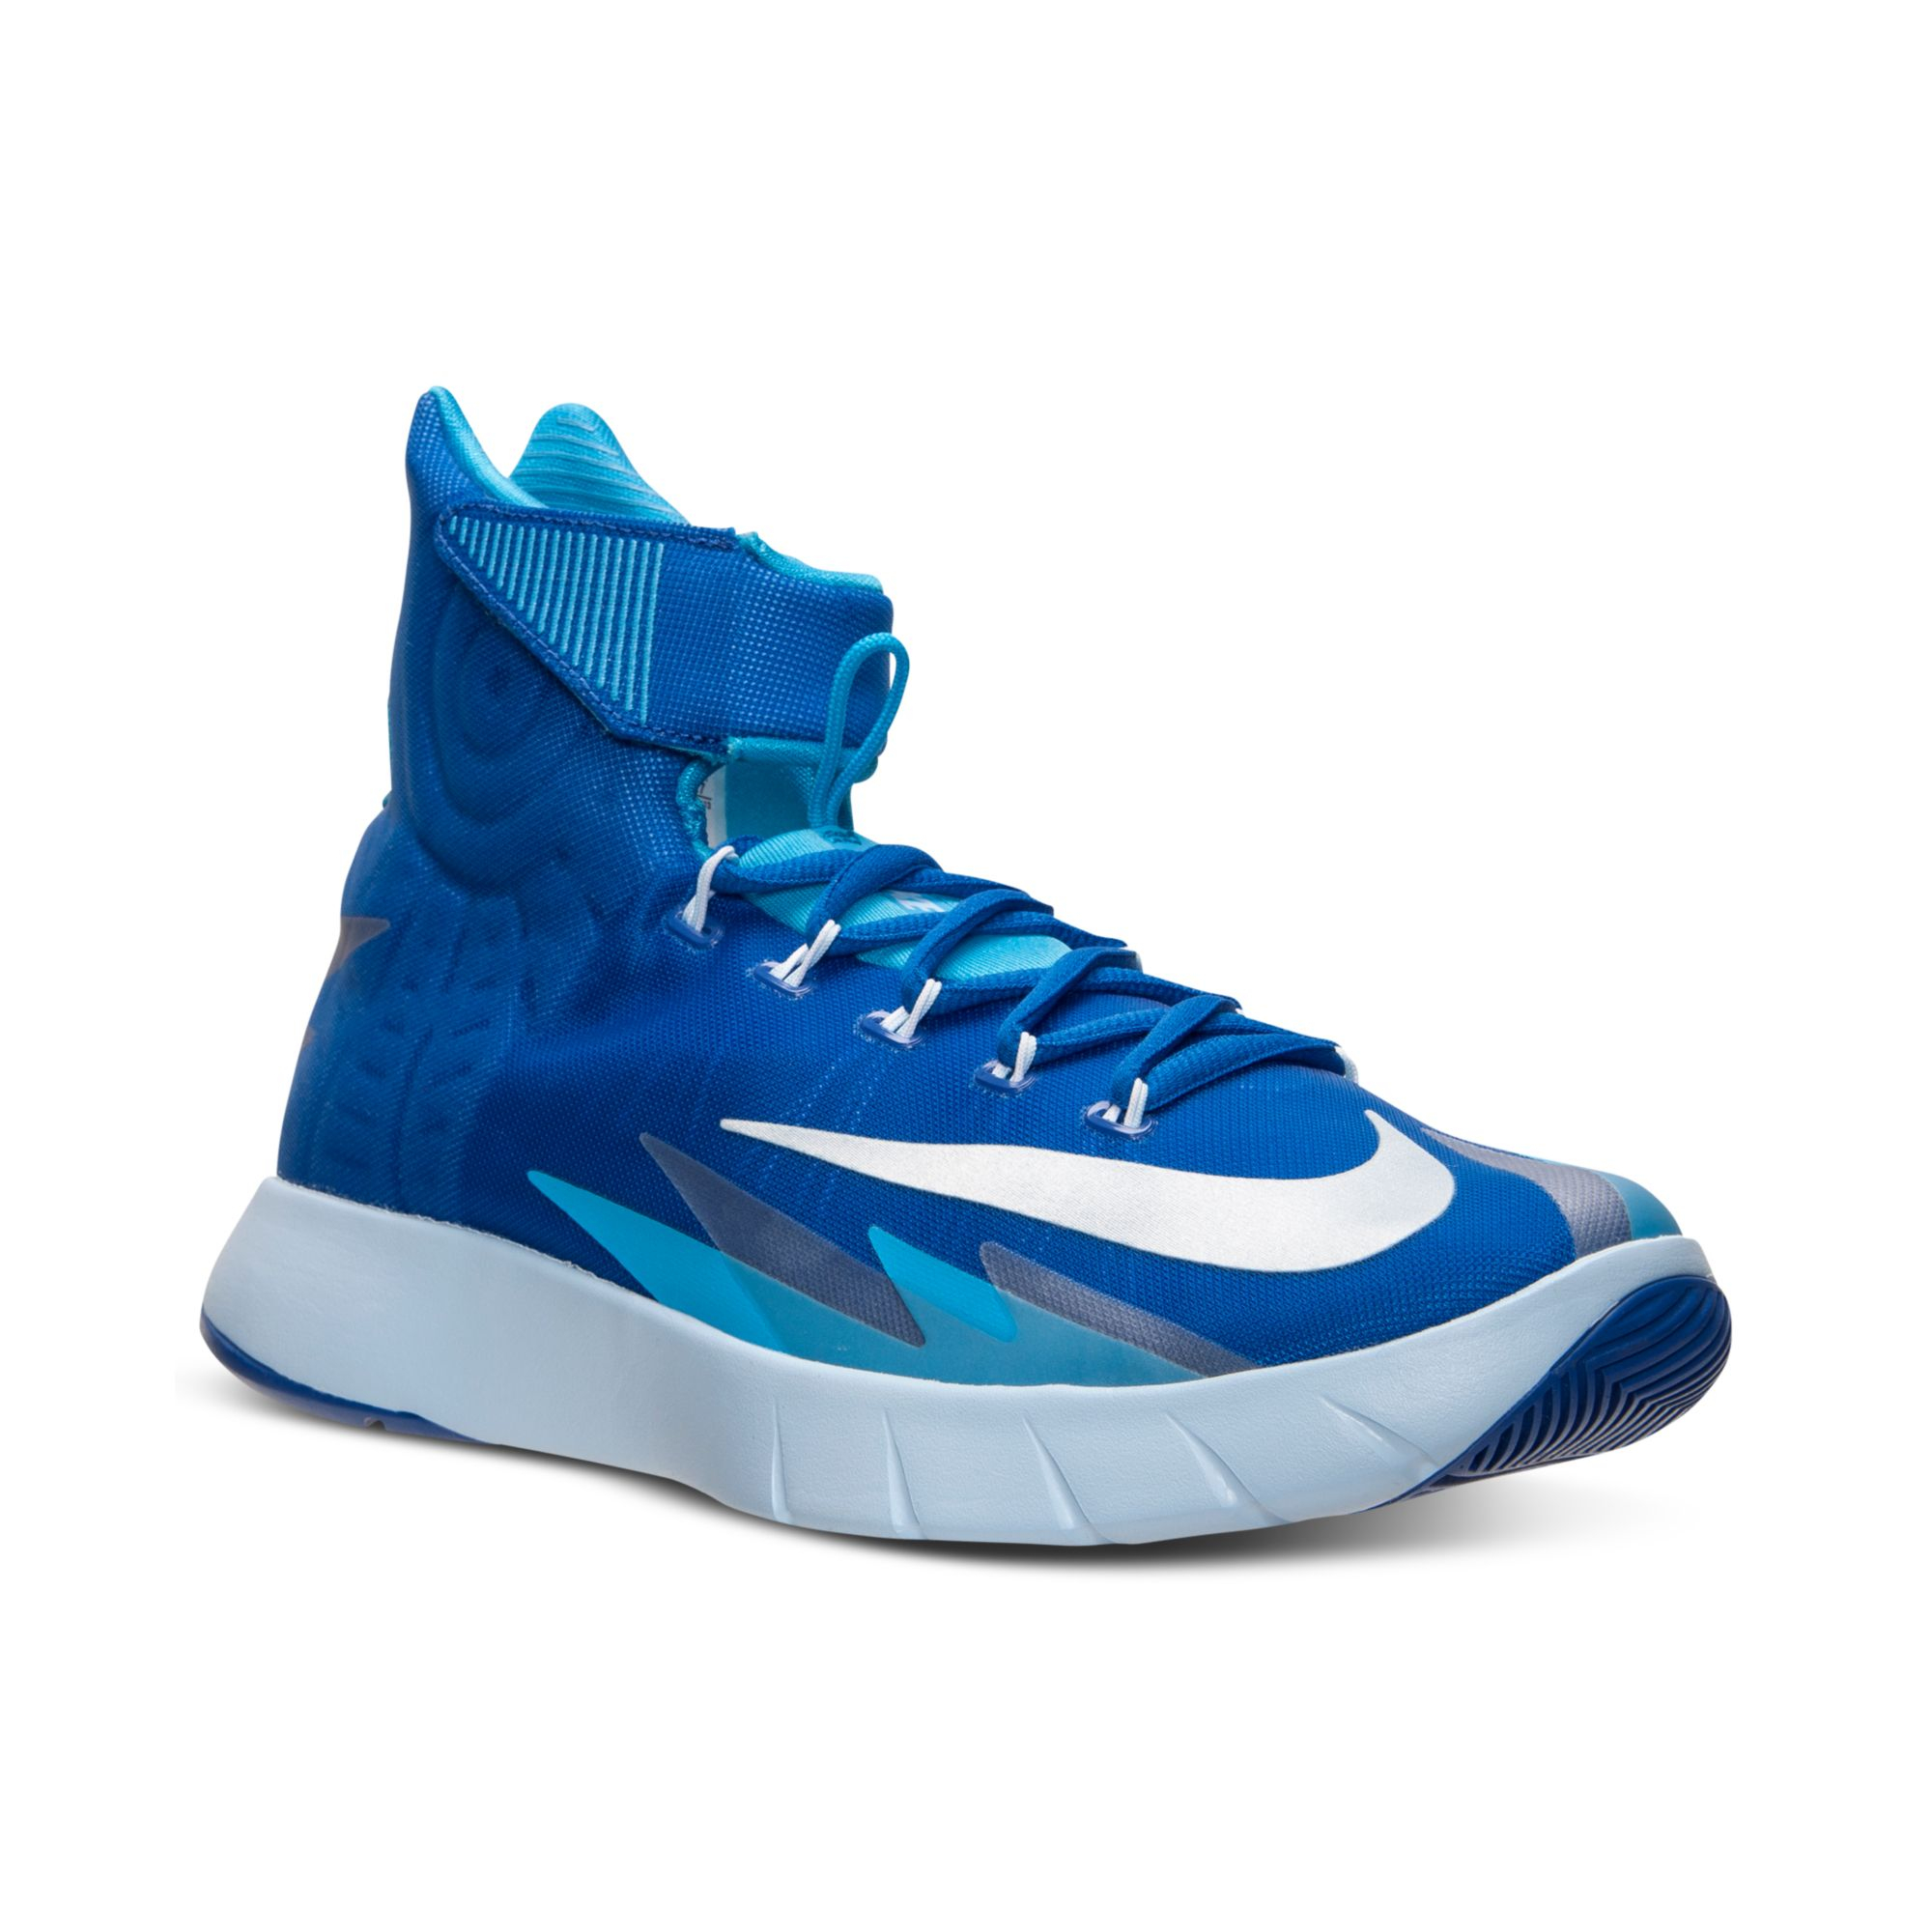 factory authentic 0713d a1be5 ... coupon code for lyst nike mens zoom hyperrev basketball sneakers from  finish line e2b16 642d2